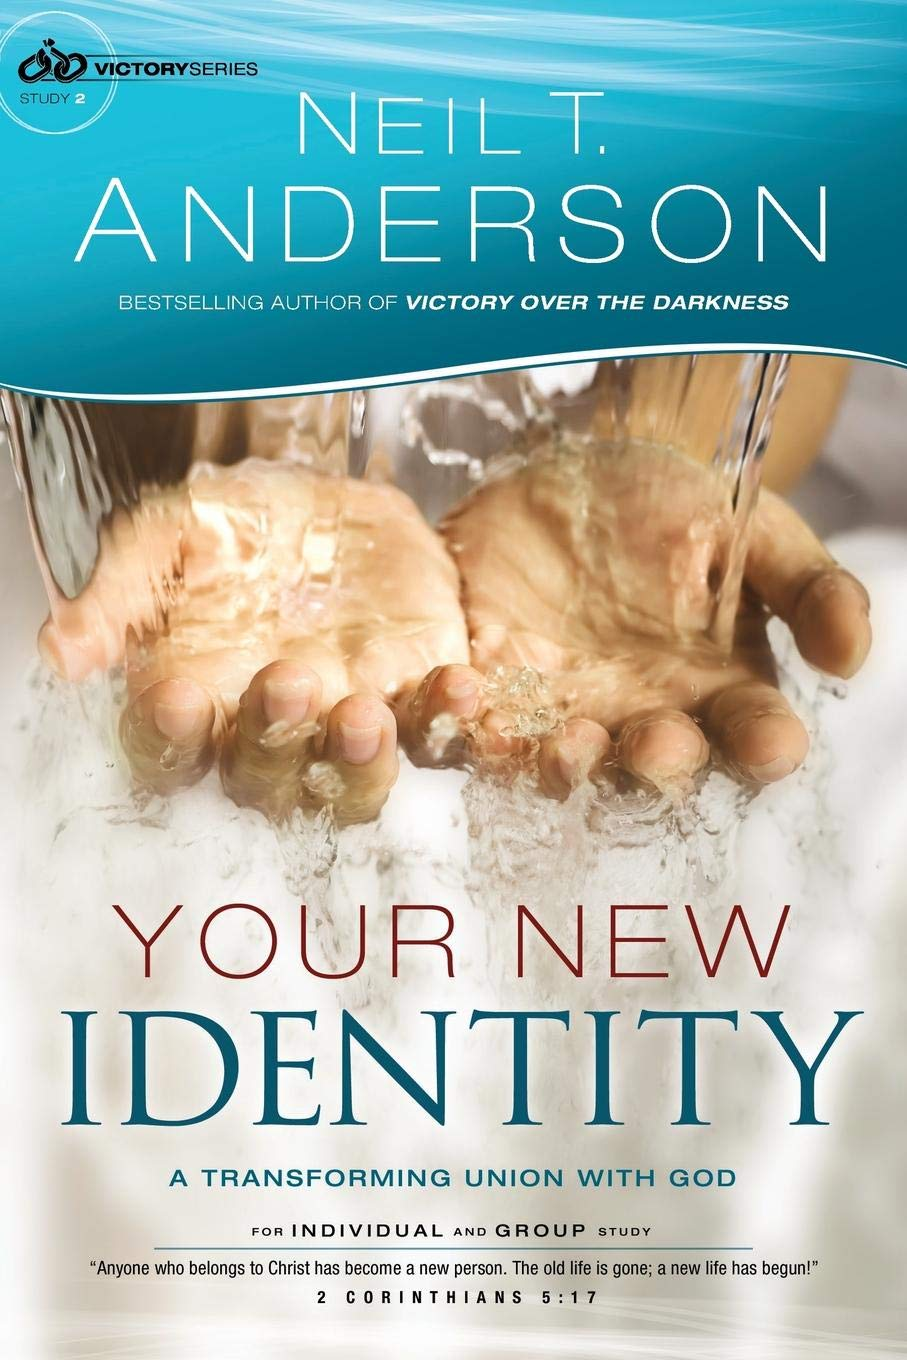 Your New Identity: A Transforming Union with God (Victory Series) (Volume  2): Neil T. Anderson: 9780764213823: Amazon.com: Books